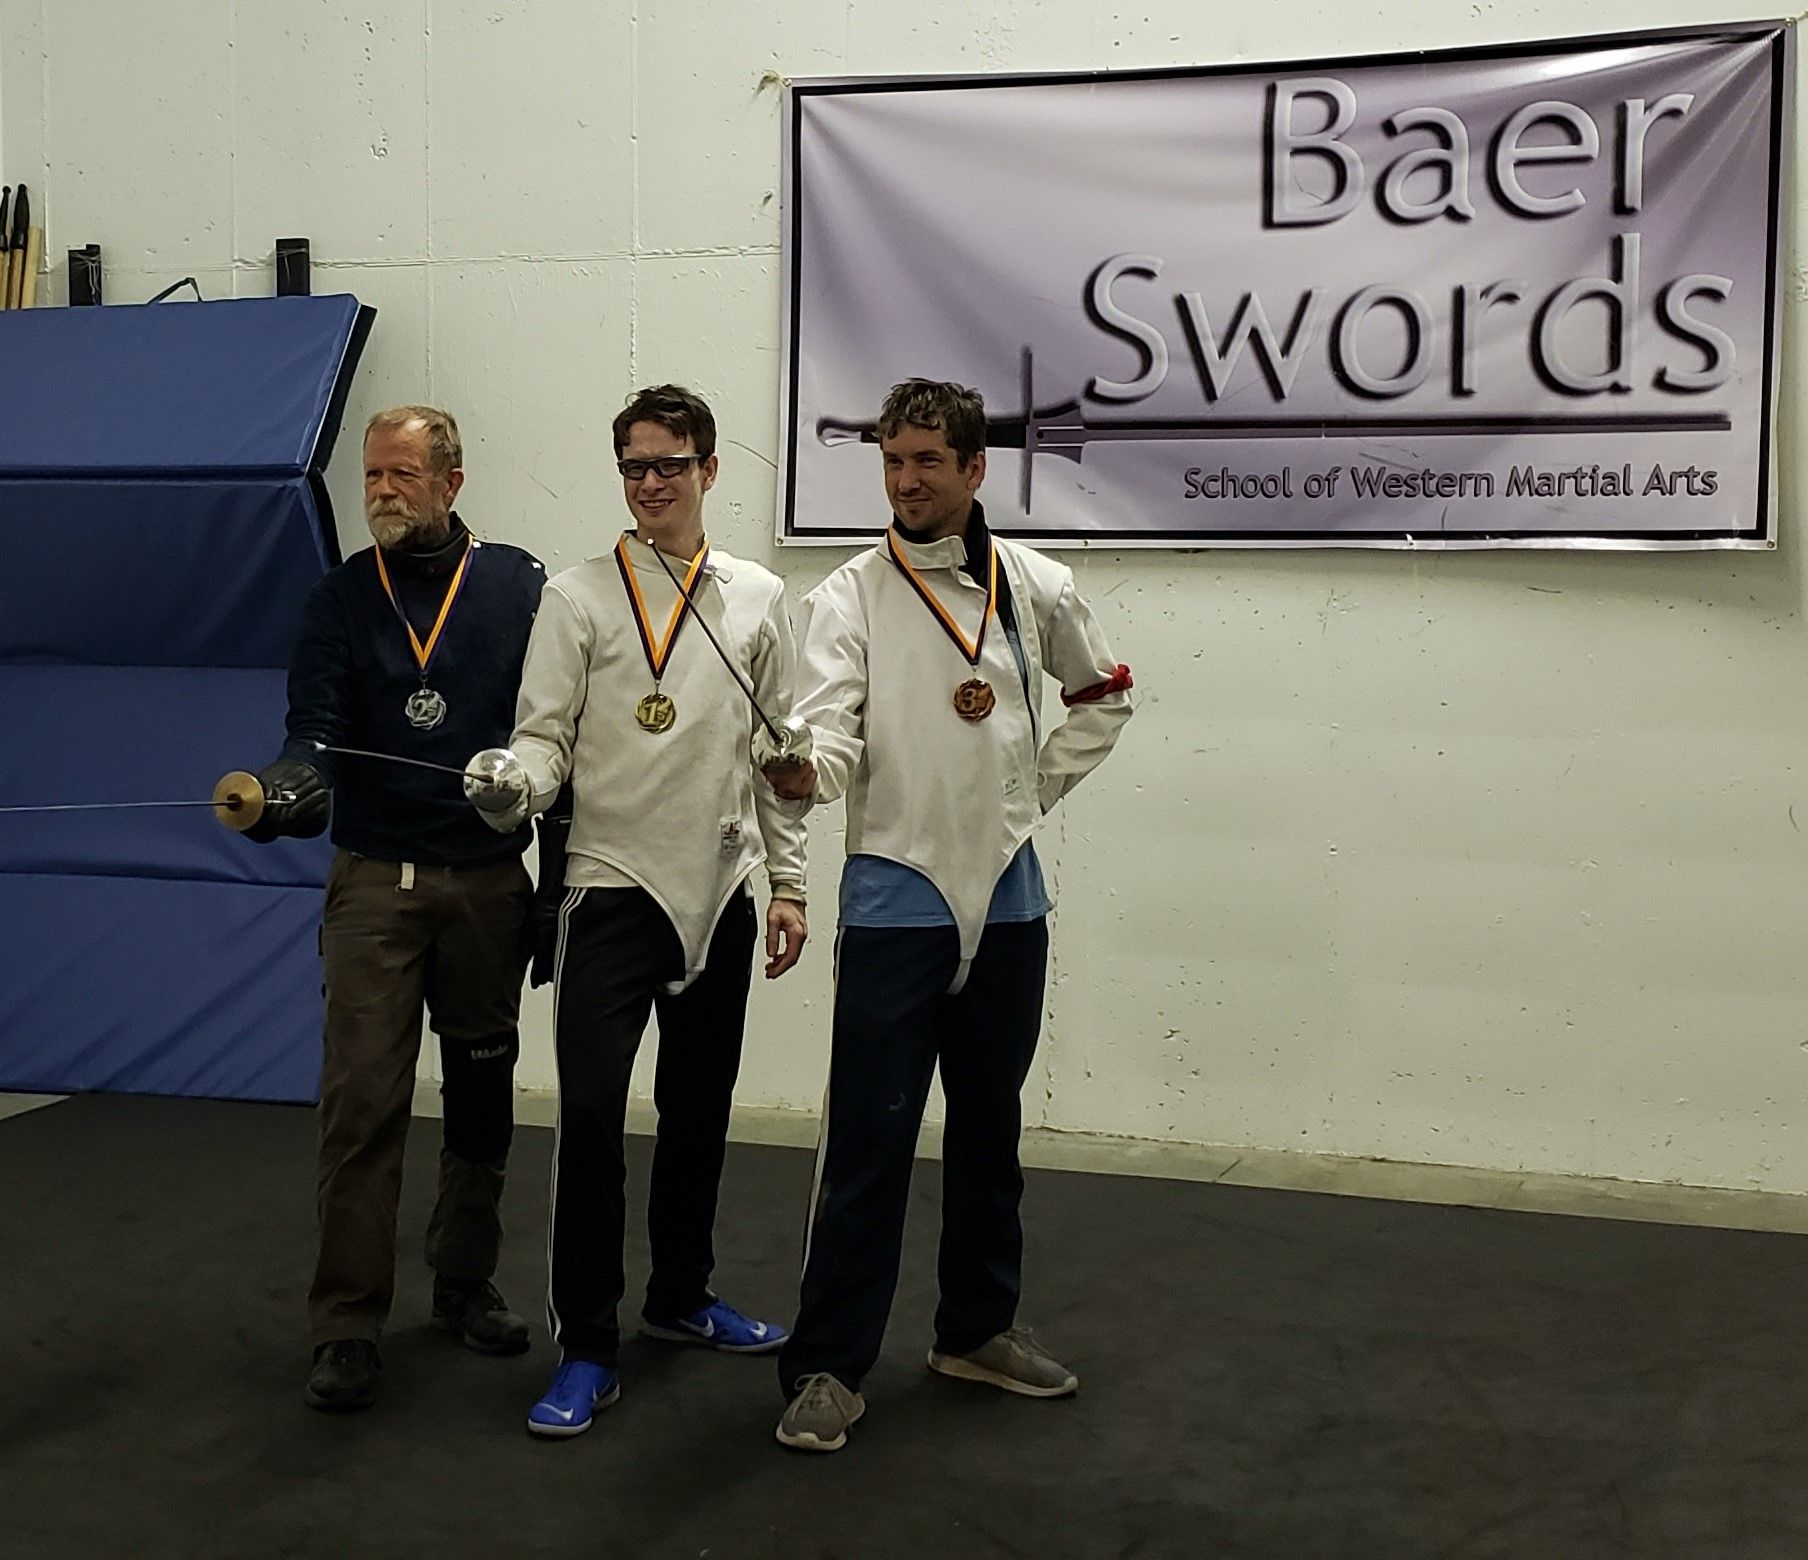 Small Sword winners.jpg